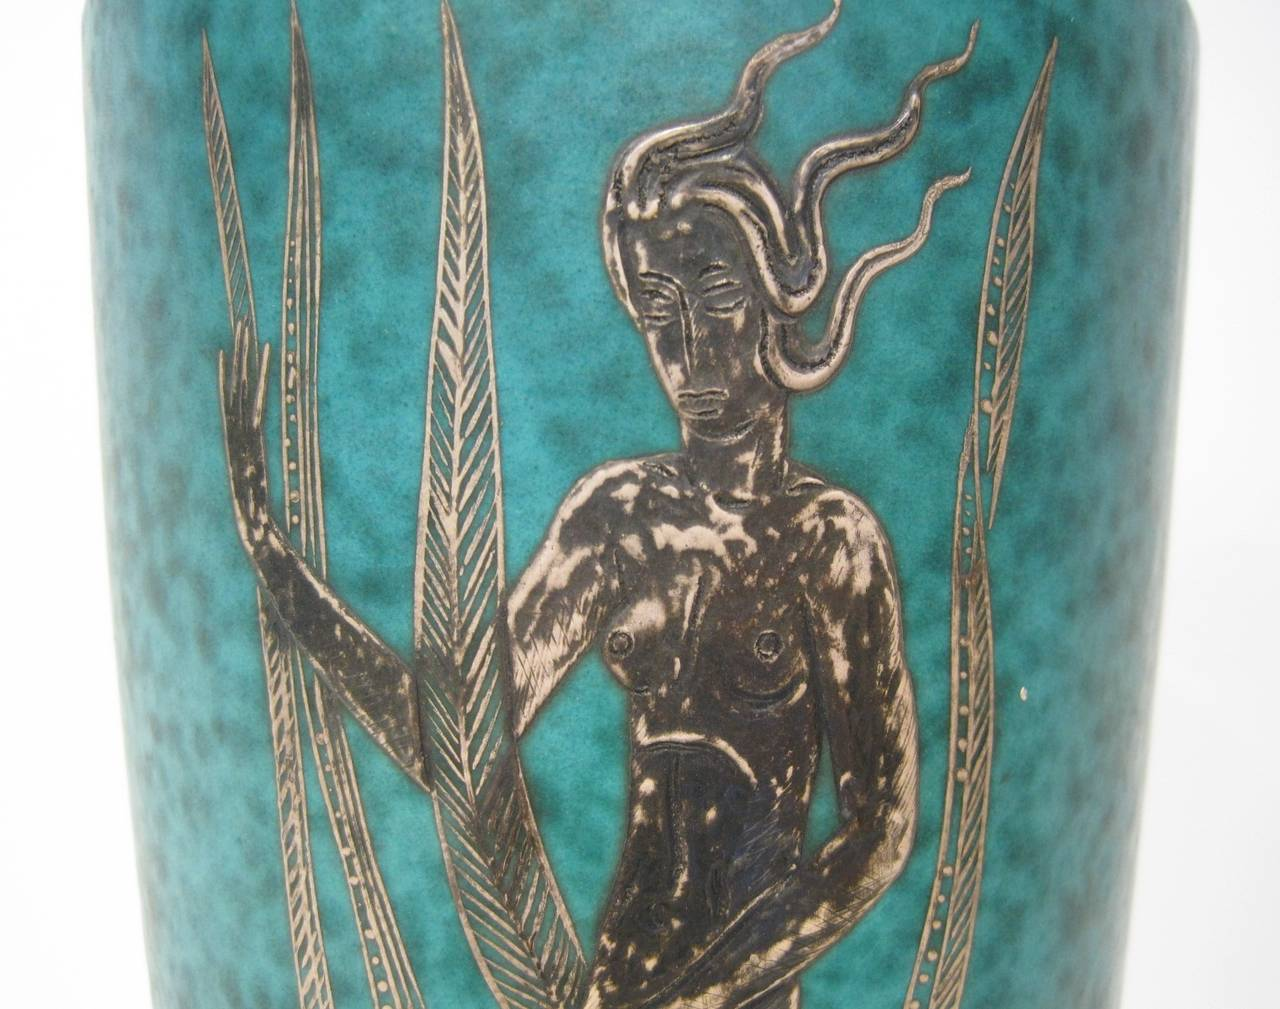 Stoneware vase with silver inlay, circa 1930s, Sweden.  Free shipping within the United States and Canada.